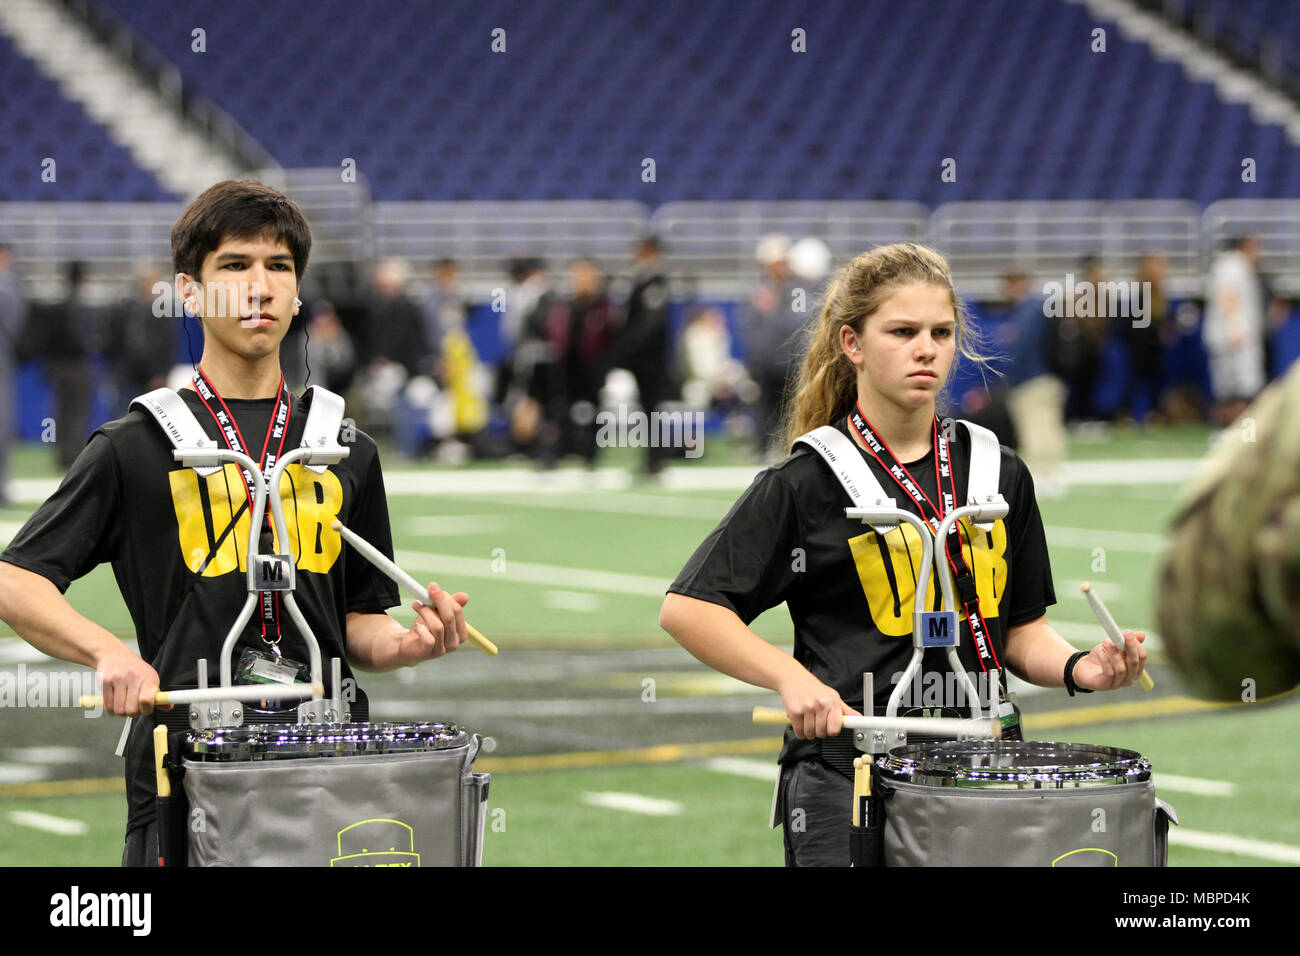 SAN ANTONIO, Texas - Drummers in the 2018 U.S. Army All-American Bowl band rehearse as a whole ensemble for the first time during bowl-week, Jan. 2, 2018. The AAB program demonstrates the Army's commitment to America's youth and increases awareness of Army service opportunities. Stock Photo